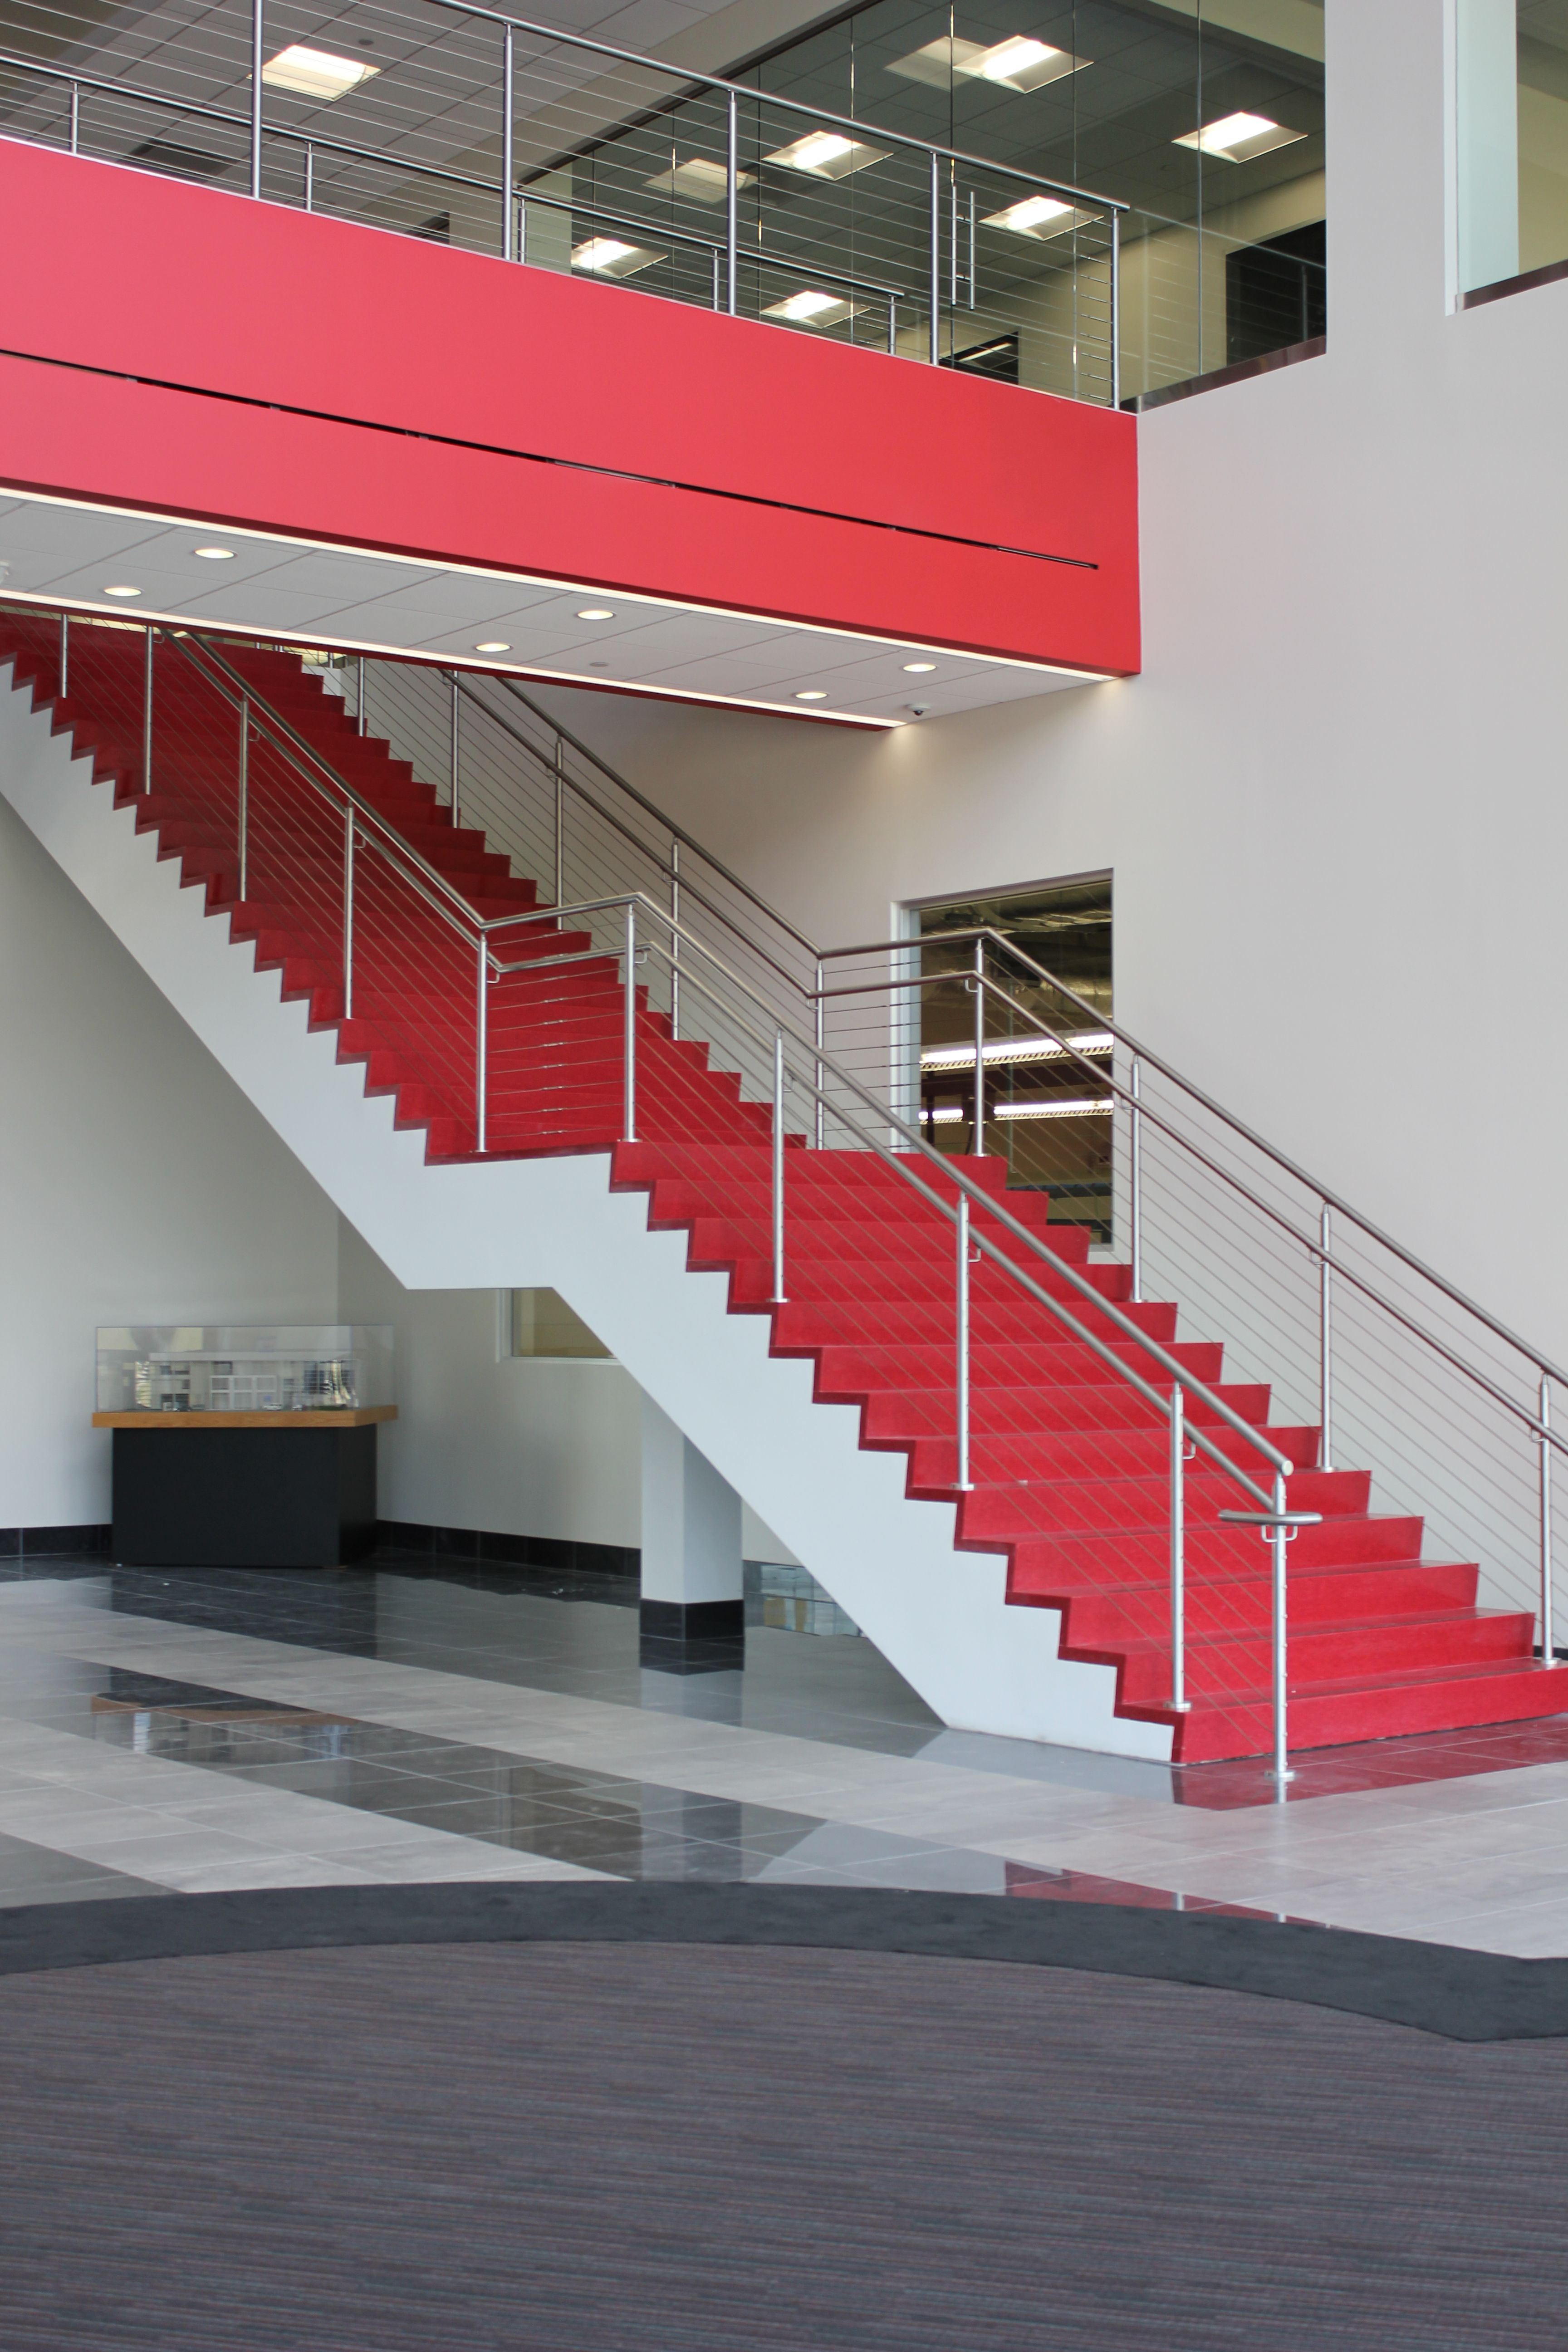 Lobby Monumental Stair Red Terrazzo Stainless Steel And Glass Railing